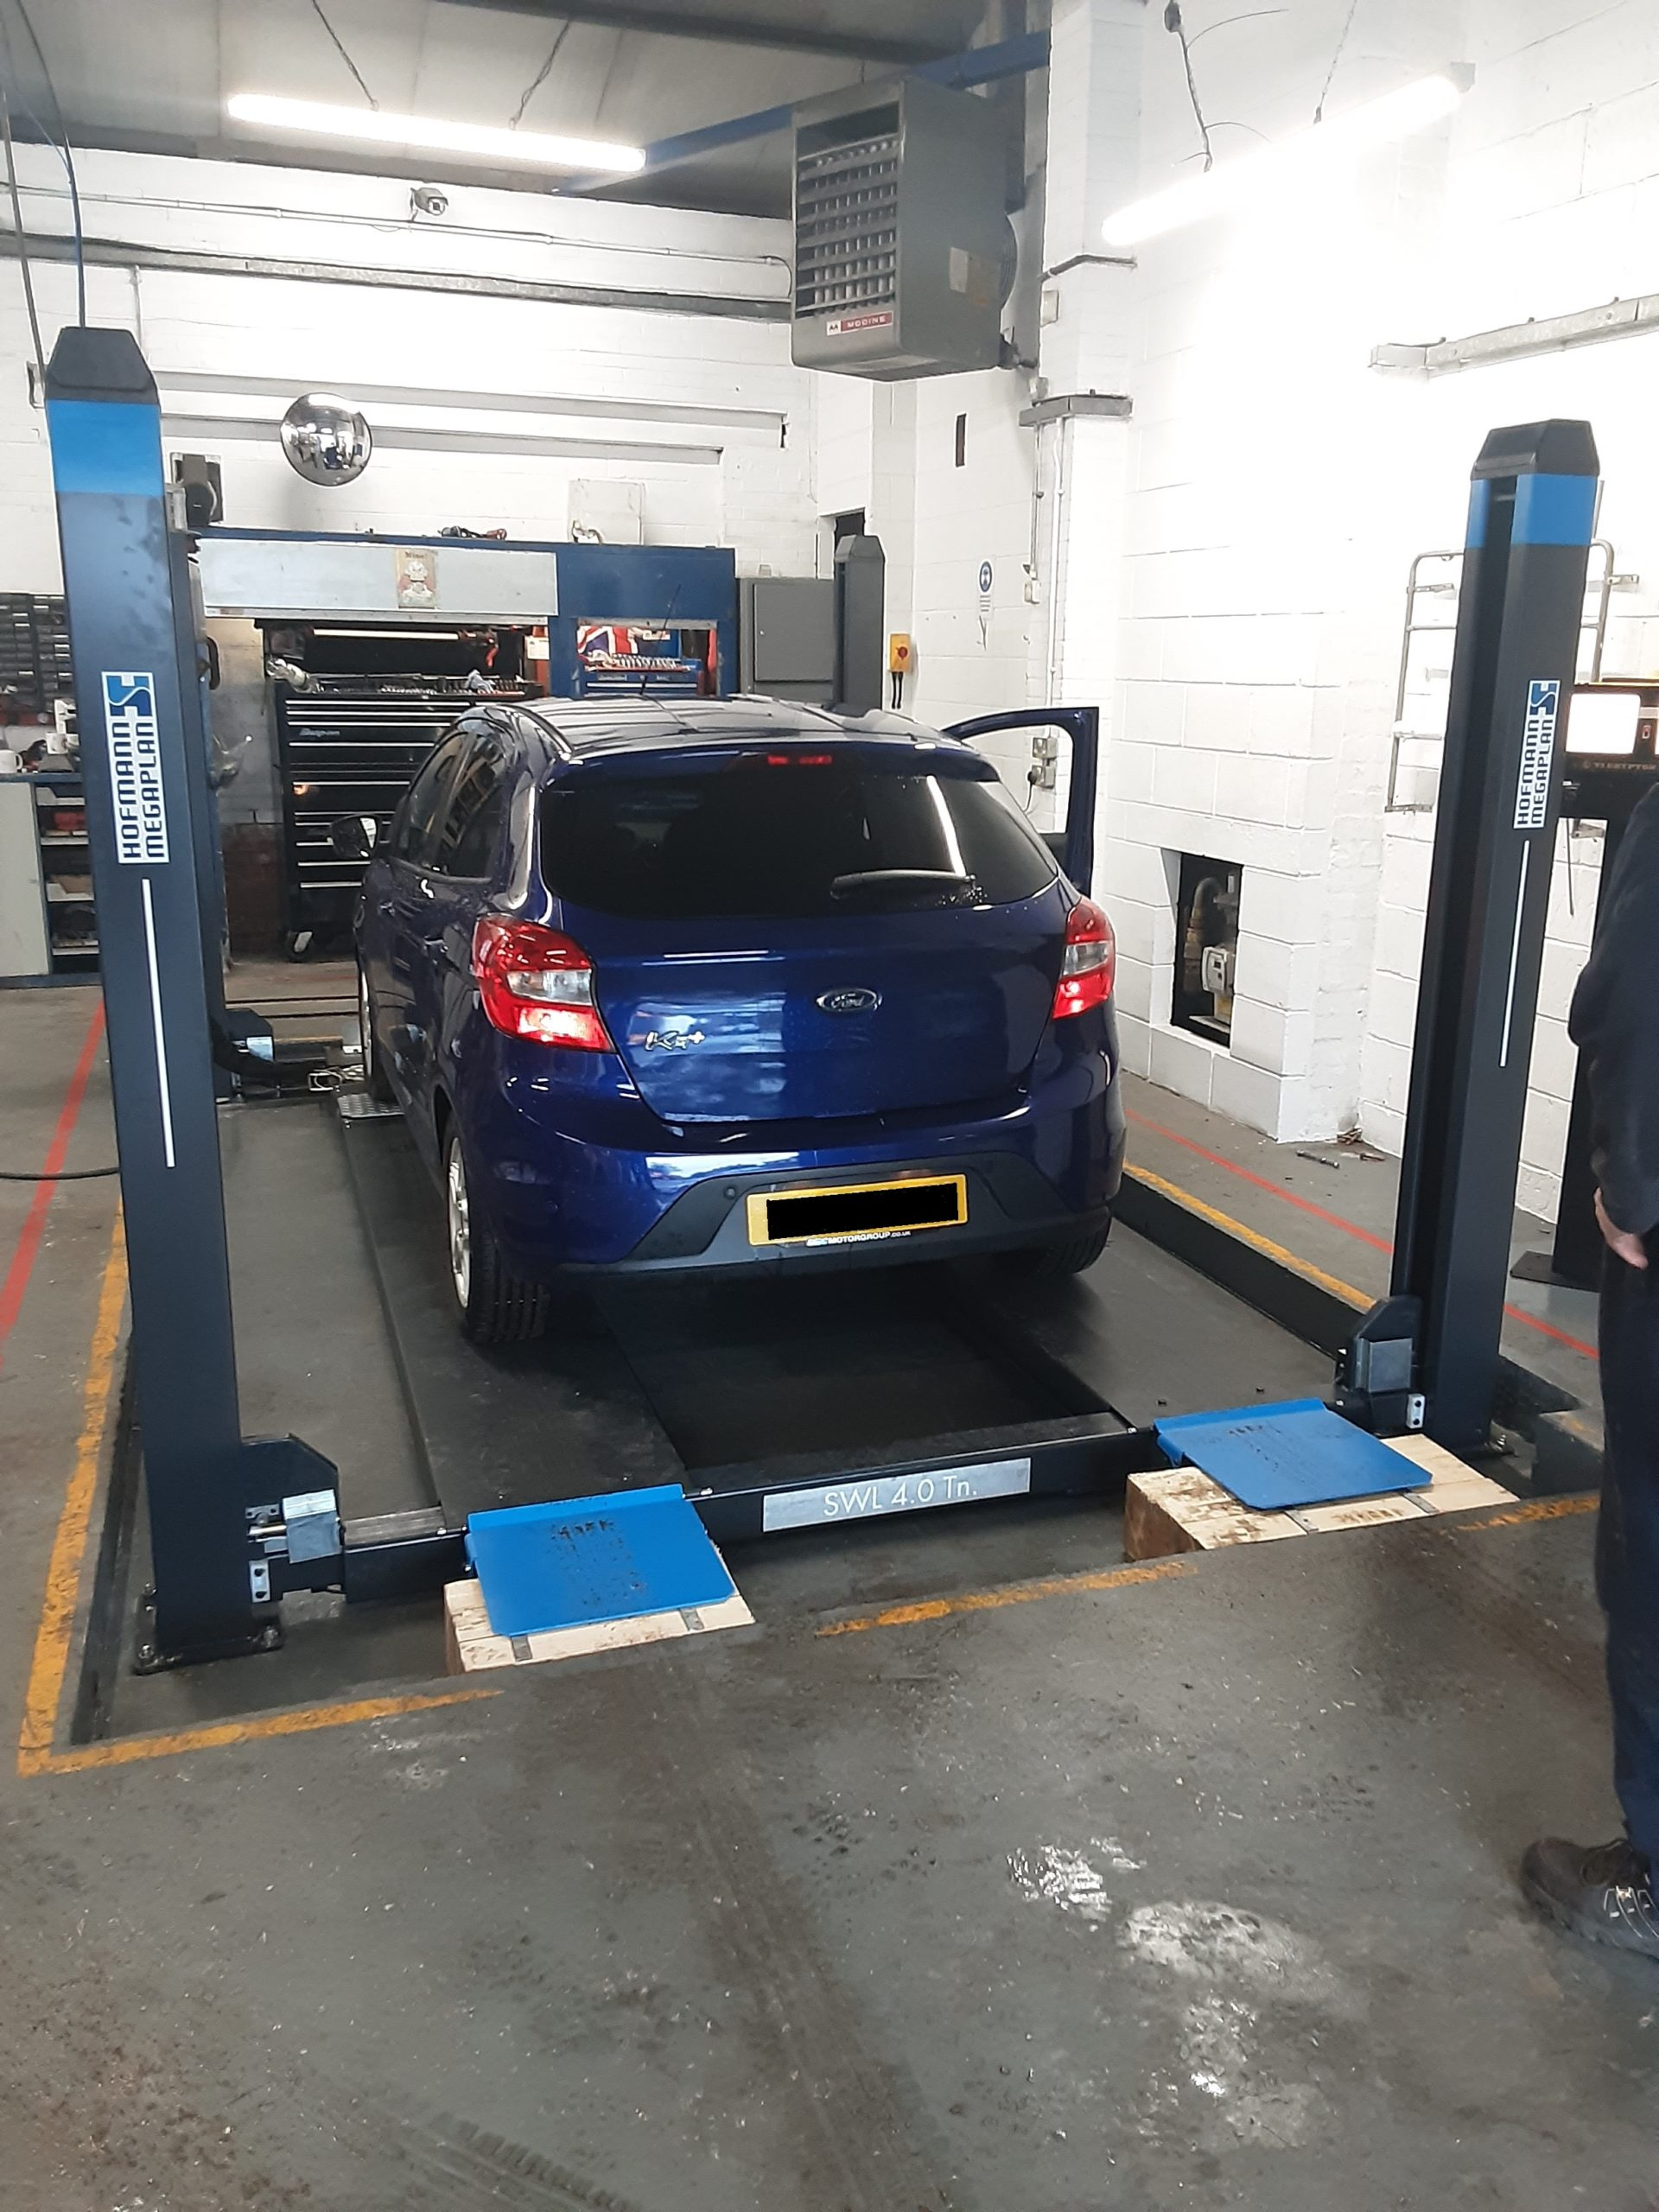 The ISN Garage Assist family helped support the upgrade of AJR Motor Engineering's MOT Bay equipment.